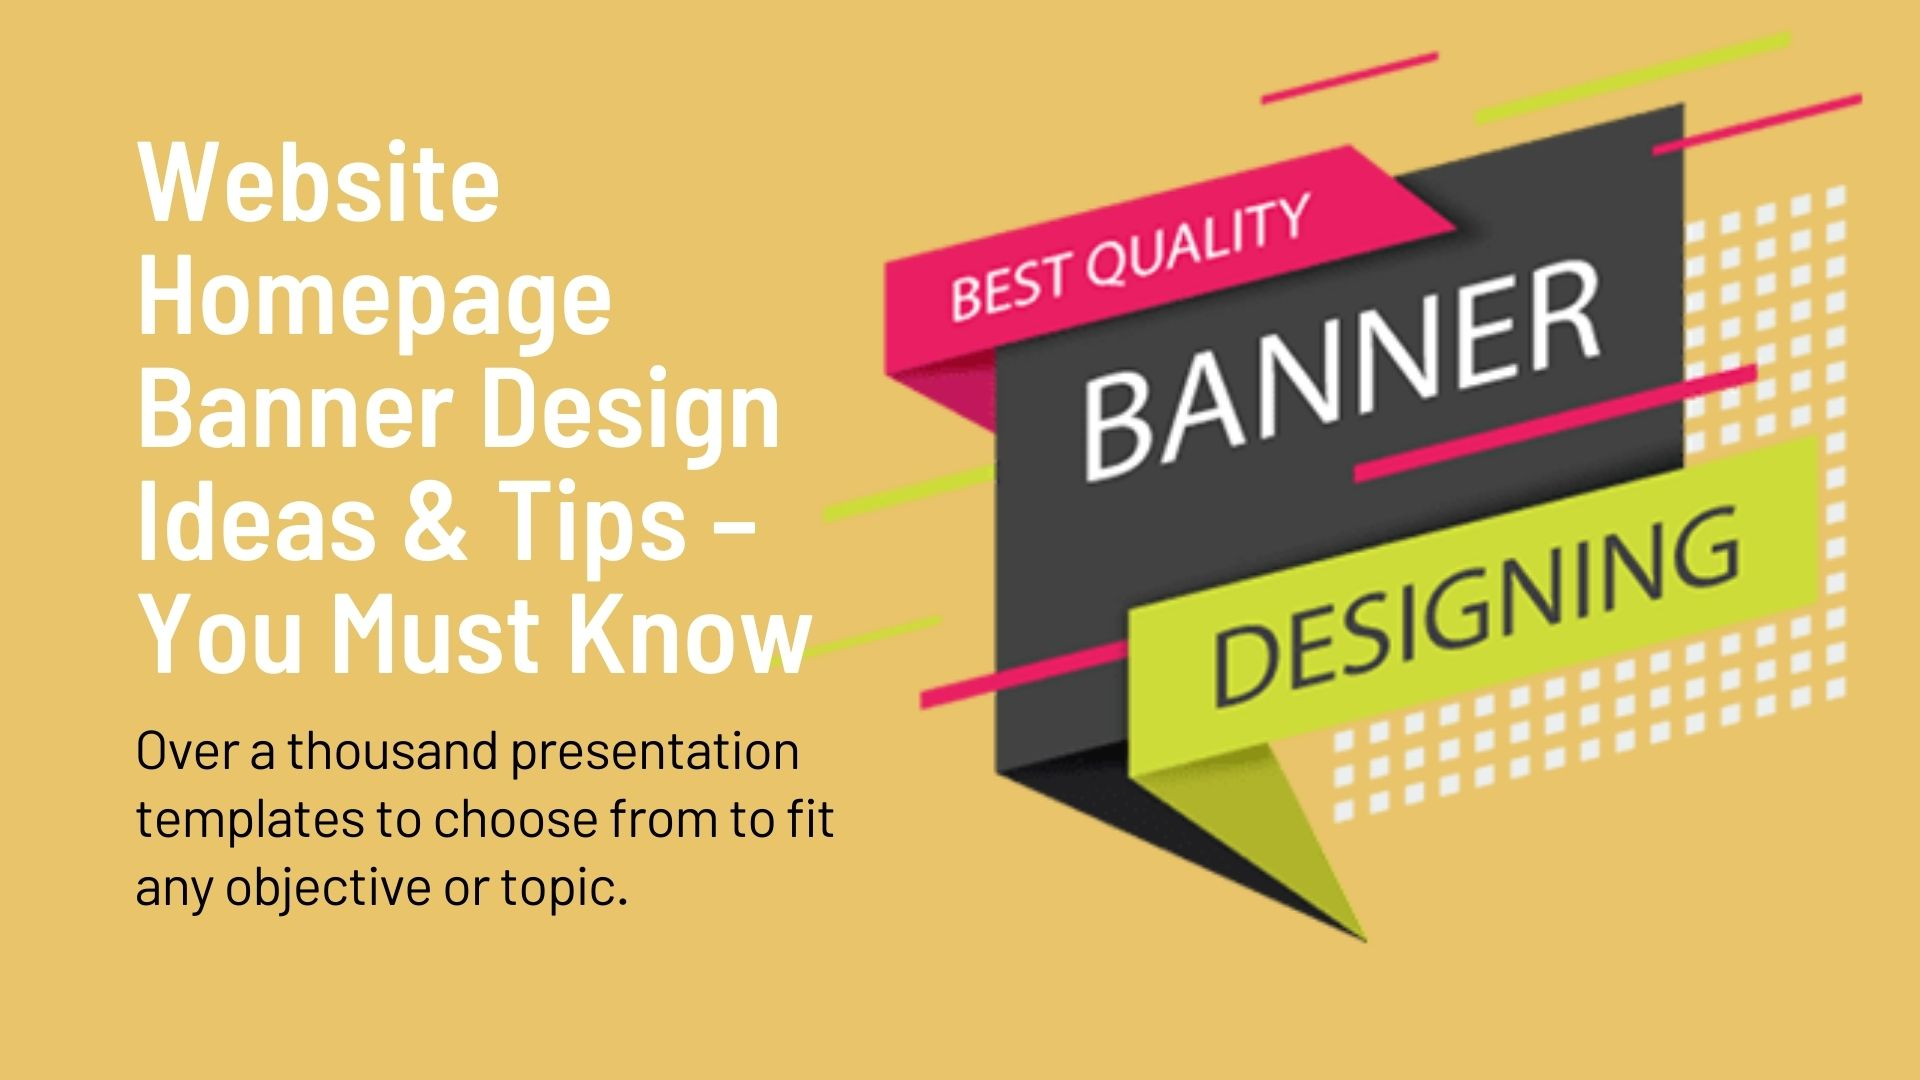 Website Homepage Banner Design Ideas & Tips – You Must Know